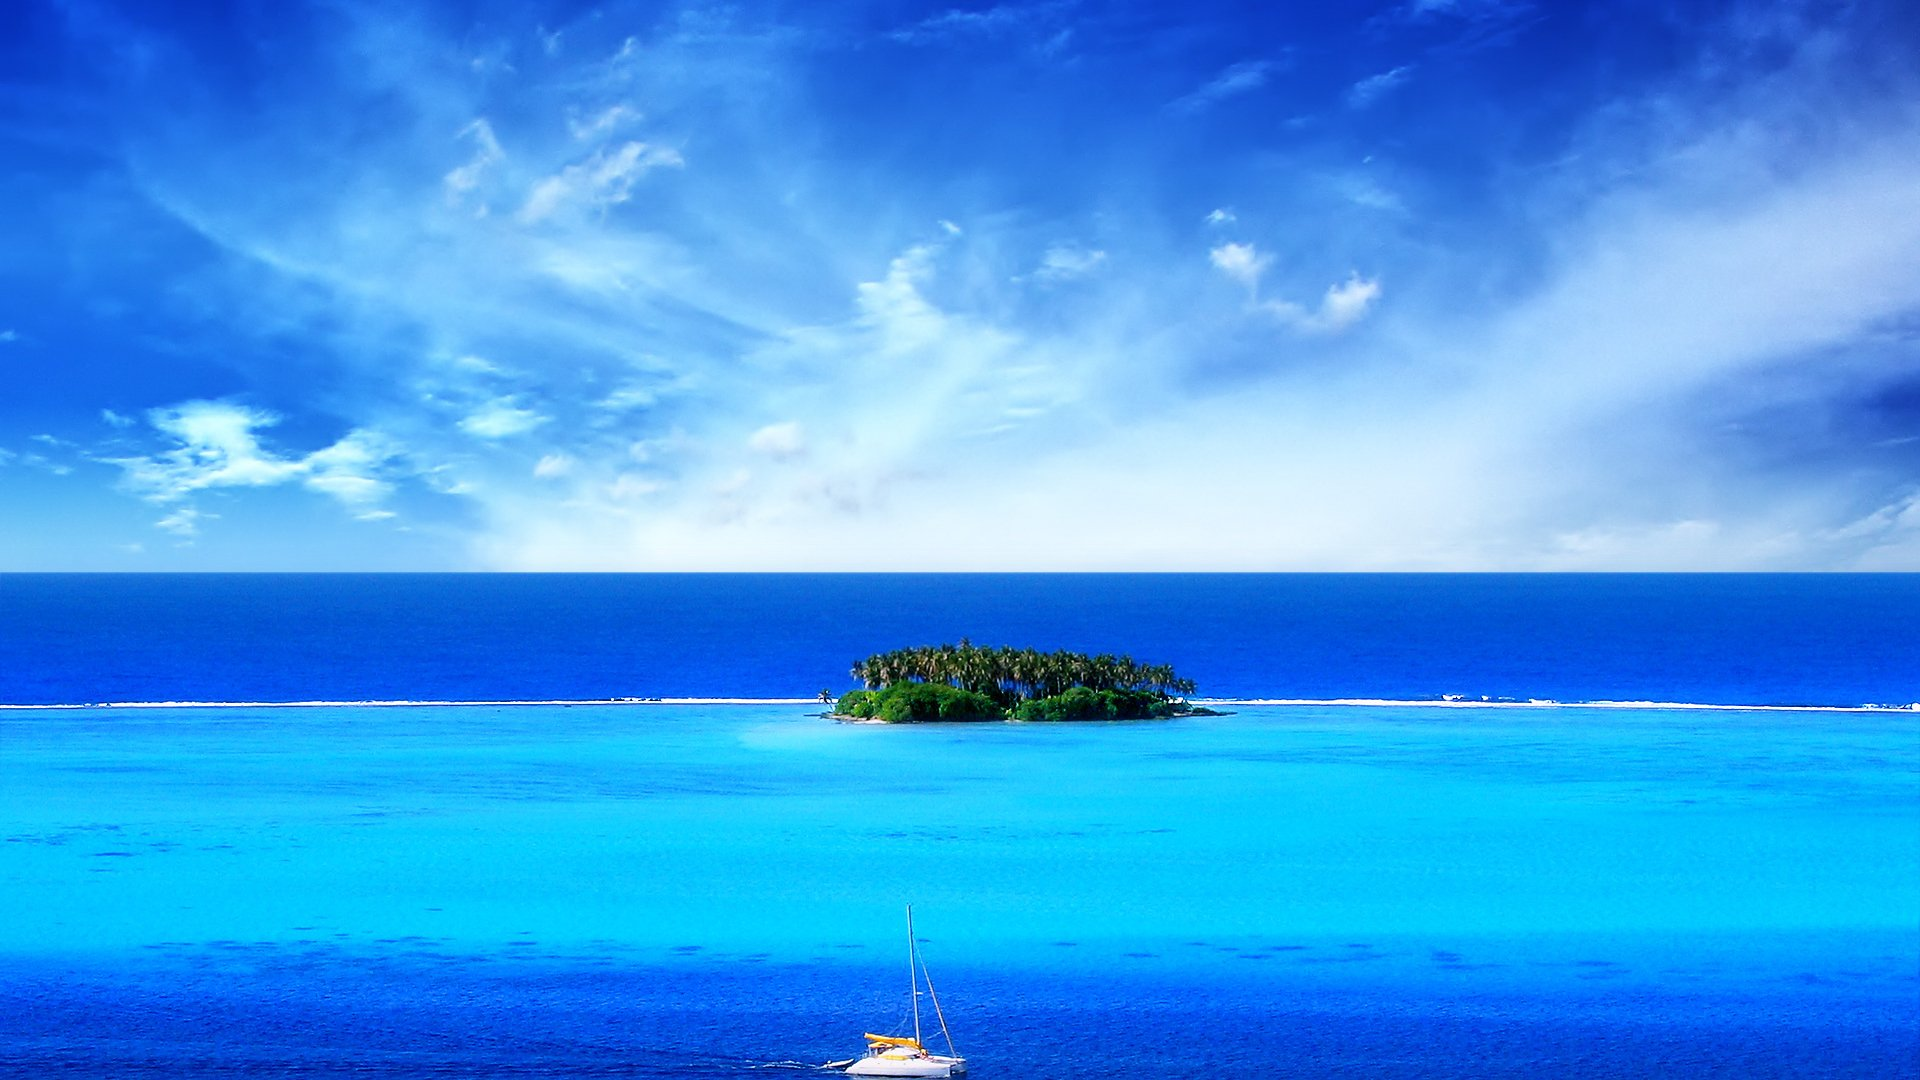 Perfect Island Wallpapers 1920x1080